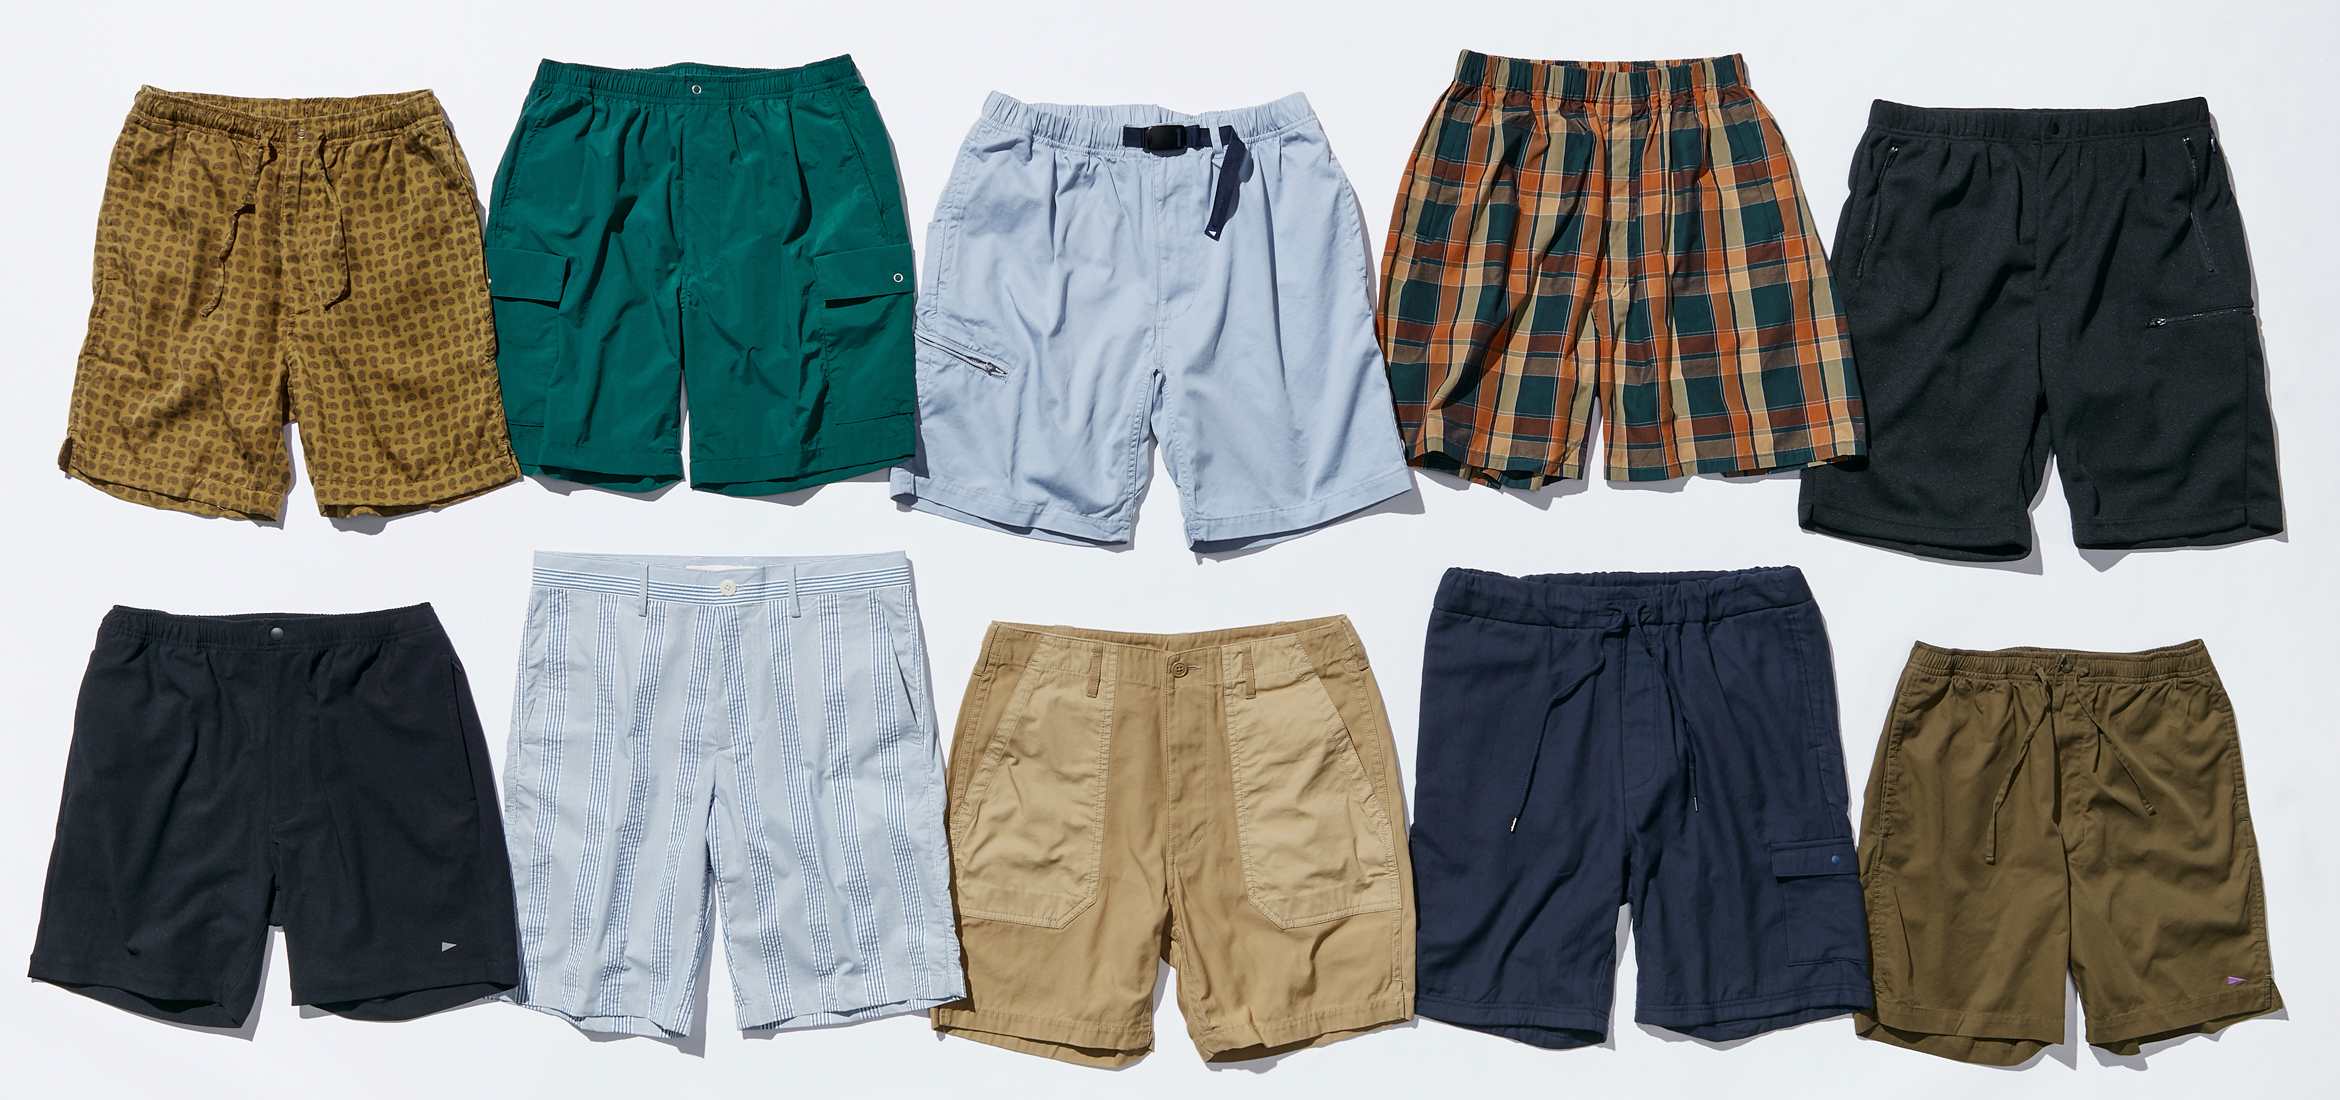 Shorts for High Summer